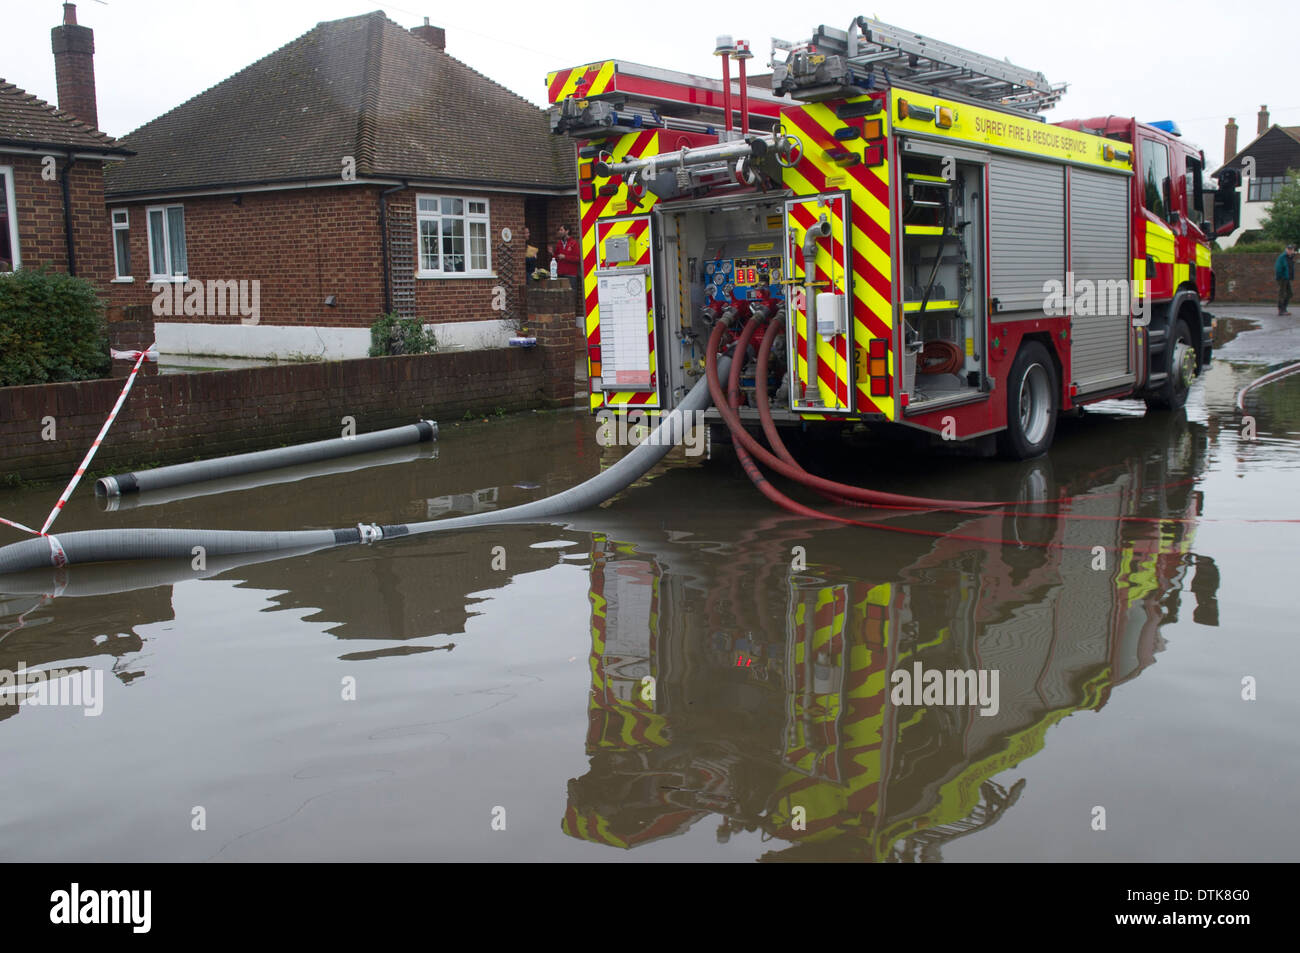 Flooded residential area and park in Staines. Driveway and streets flooded. Fire brigade pumping water from front gardens. - Stock Image